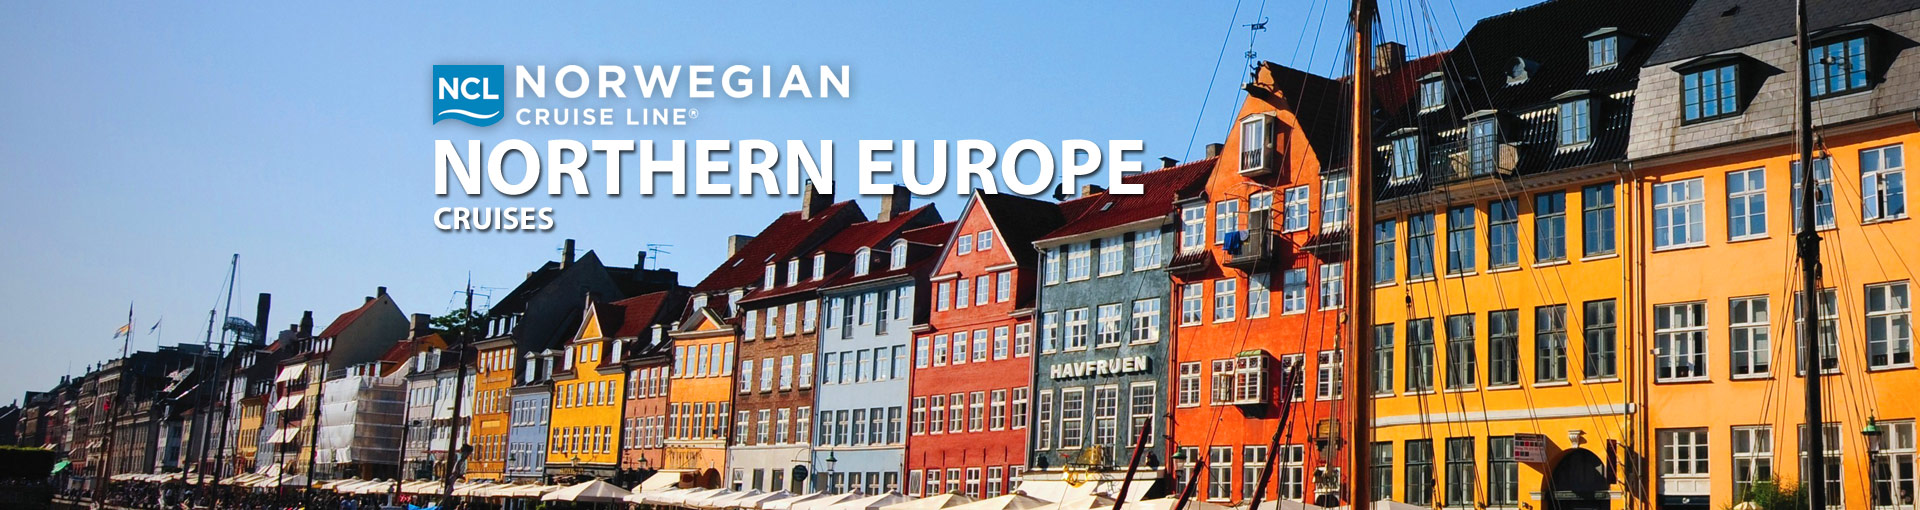 Norwegian Cruise Line Northern Europe Cruises